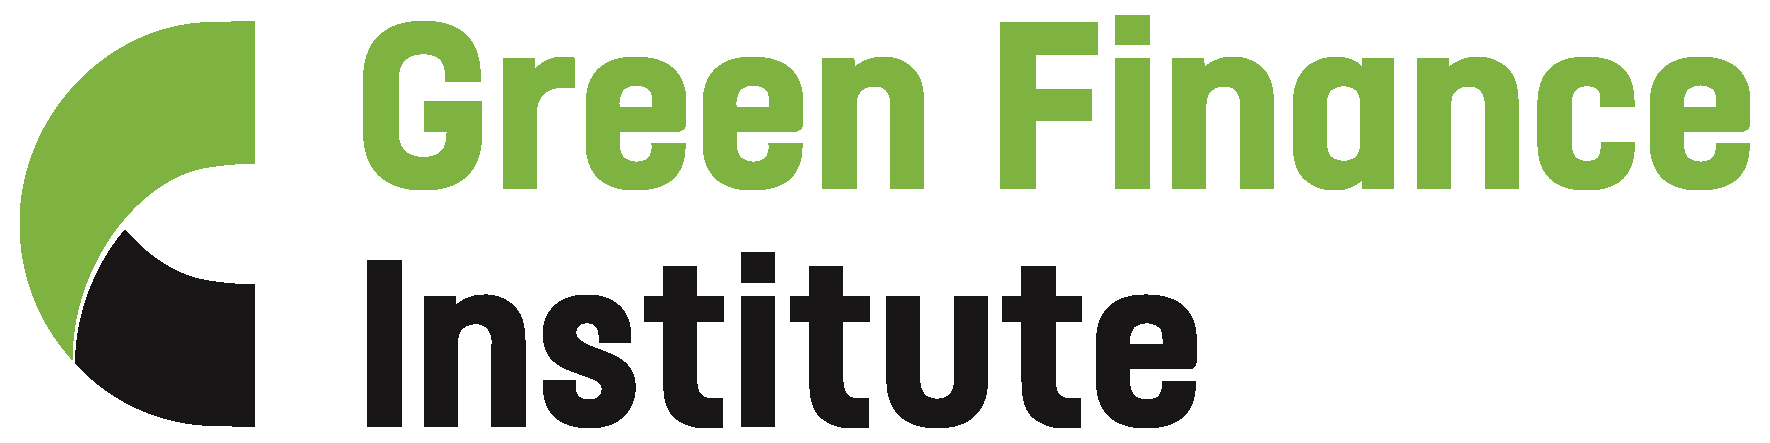 GREEN FINANCE INSTITUTE LOGO